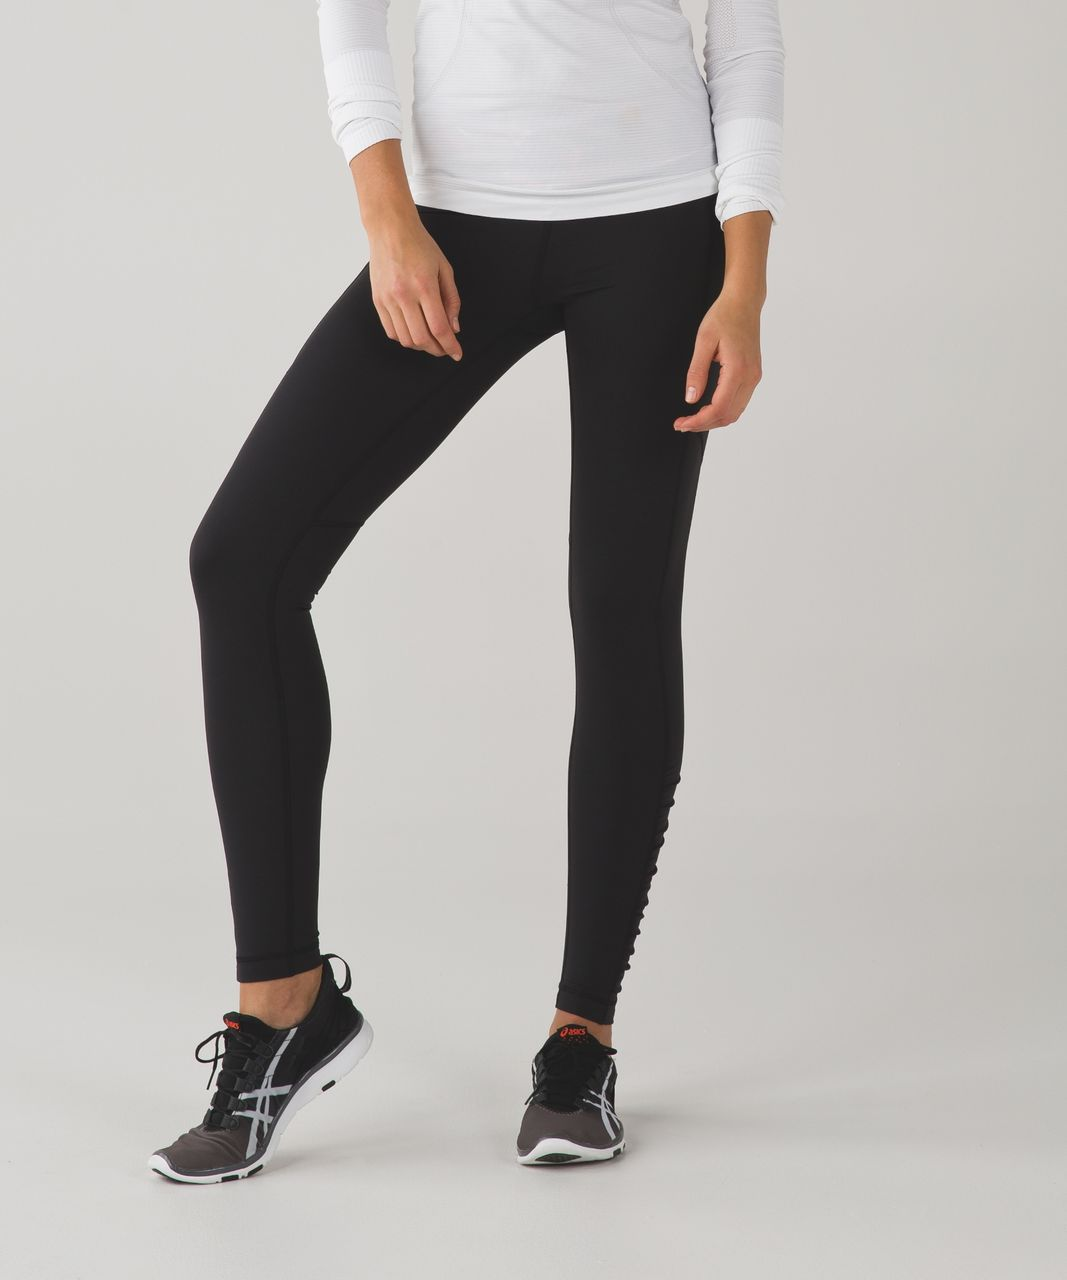 Lululemon Speed Tight IV - Black / Poppy Petals Berry Rumble Multi